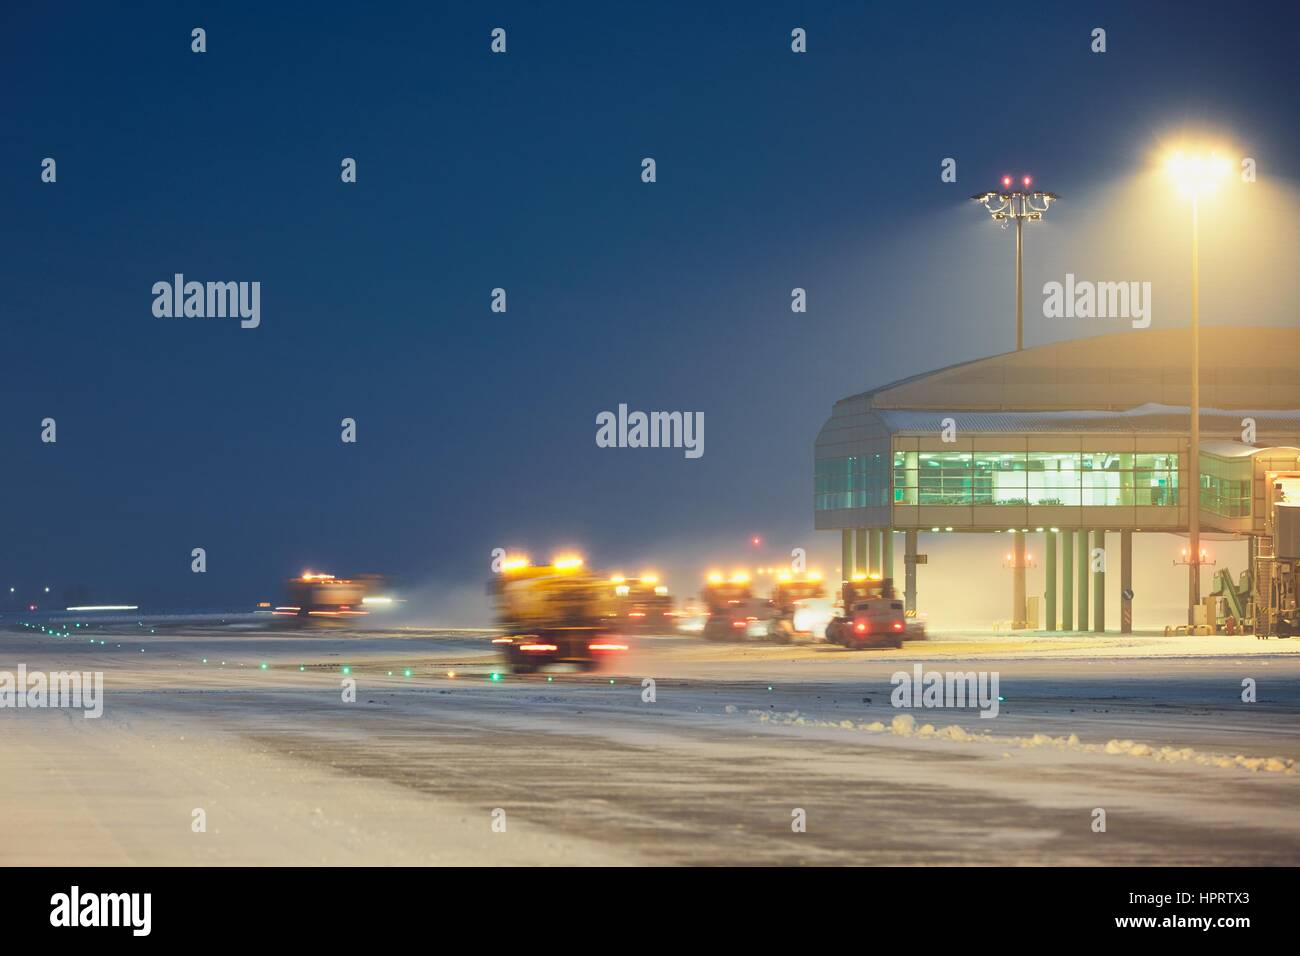 Airport during the snowstorm. Snow plows cleared the snow from the runways and taxiways. - selective focus on terminal - Stock Image